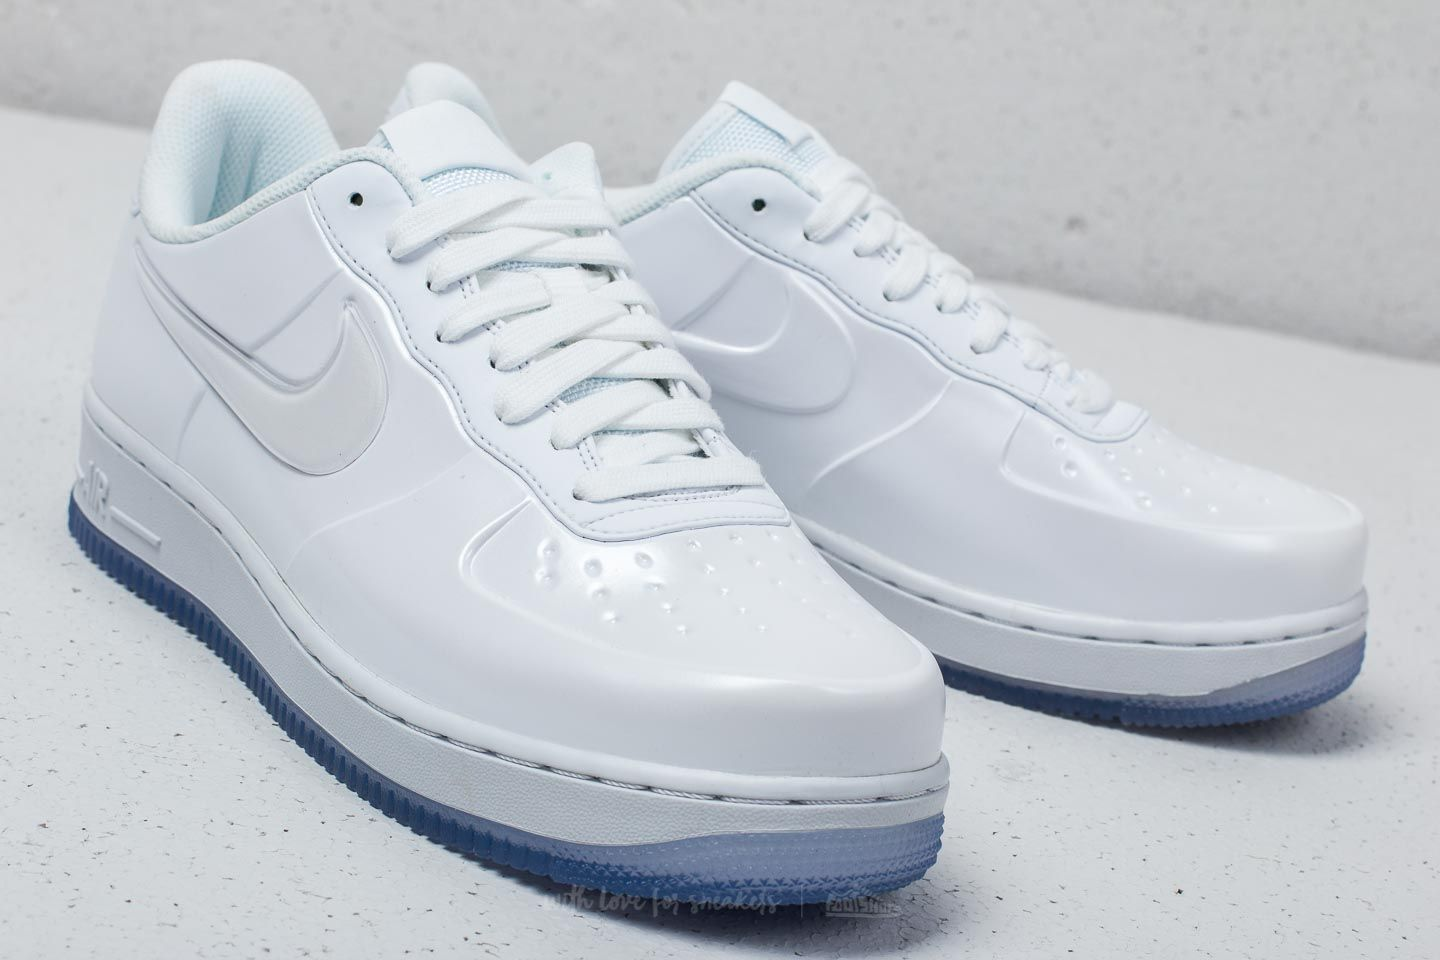 reputable site e6603 4e812 Nike Air Force 1 Foamposite Pro Cup White/ White | Footshop